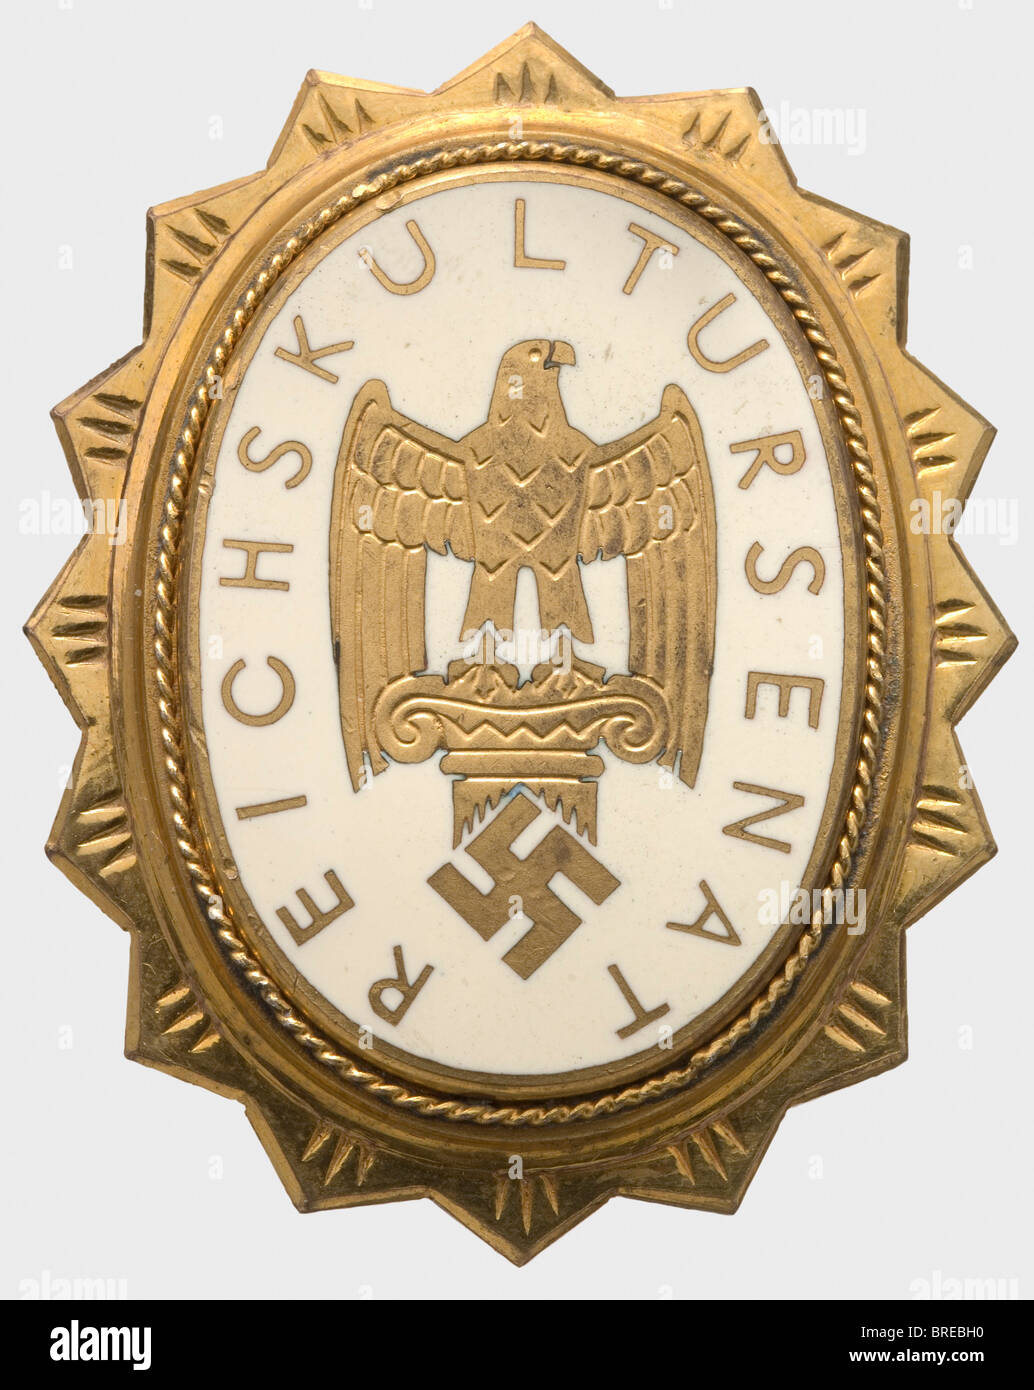 A Badge of Honour, for members of the Reich Senate of Culture Gilt silver, the corona polished, the enamelled medallion - Stock Image